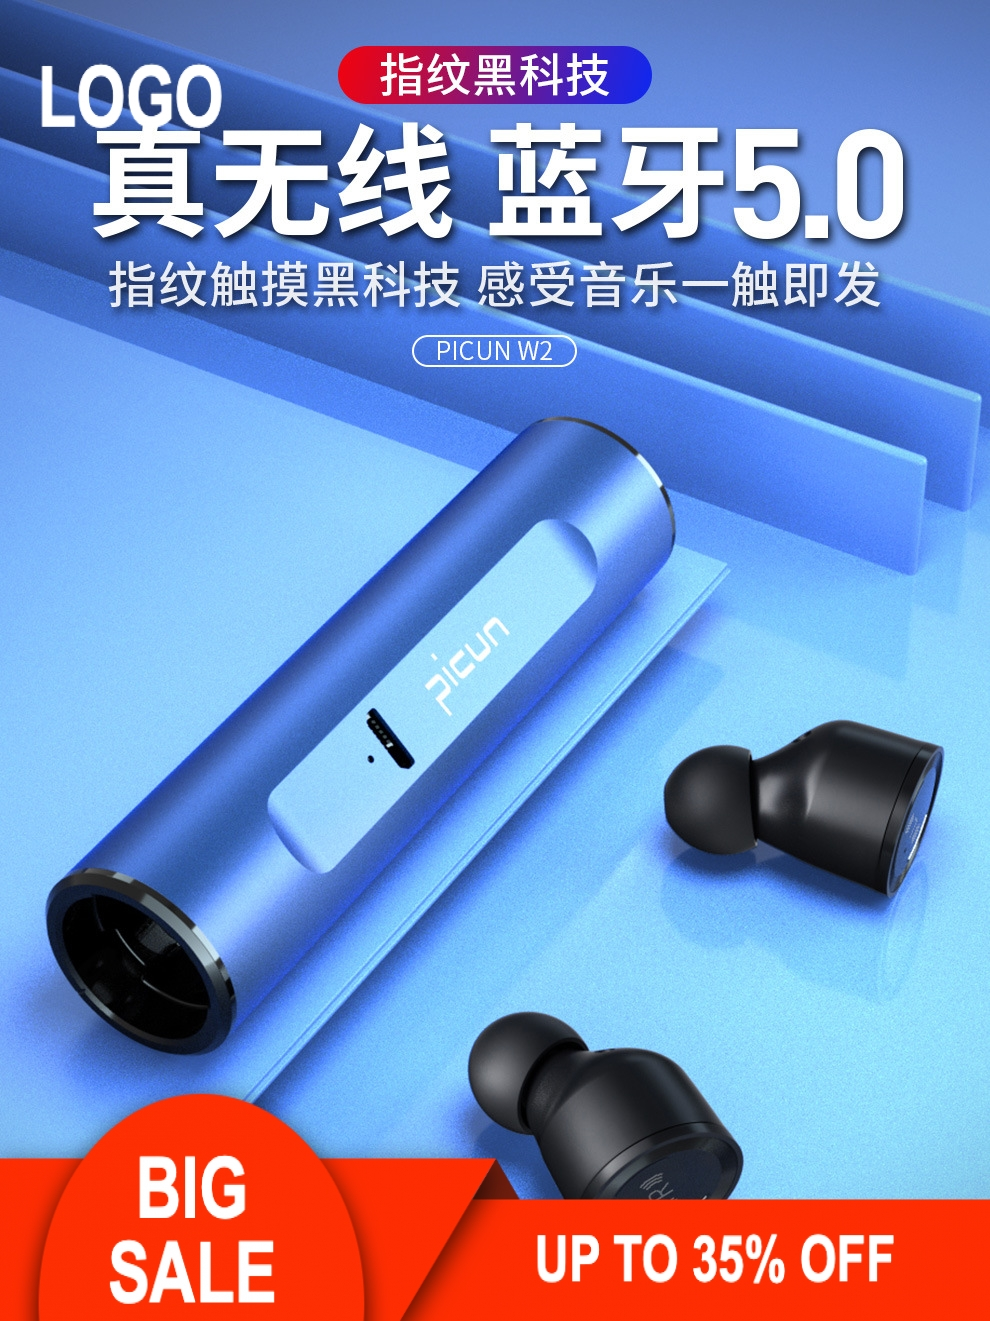 Genuine Picun W2 Wireless   Bluetooth Earphones Sports Bass Earphone Headset with Mic for iPhone Xiaomi Huawei PC MP3Genuine Picun W2 Wireless   Bluetooth Earphones Sports Bass Earphone Headset with Mic for iPhone Xiaomi Huawei PC MP3